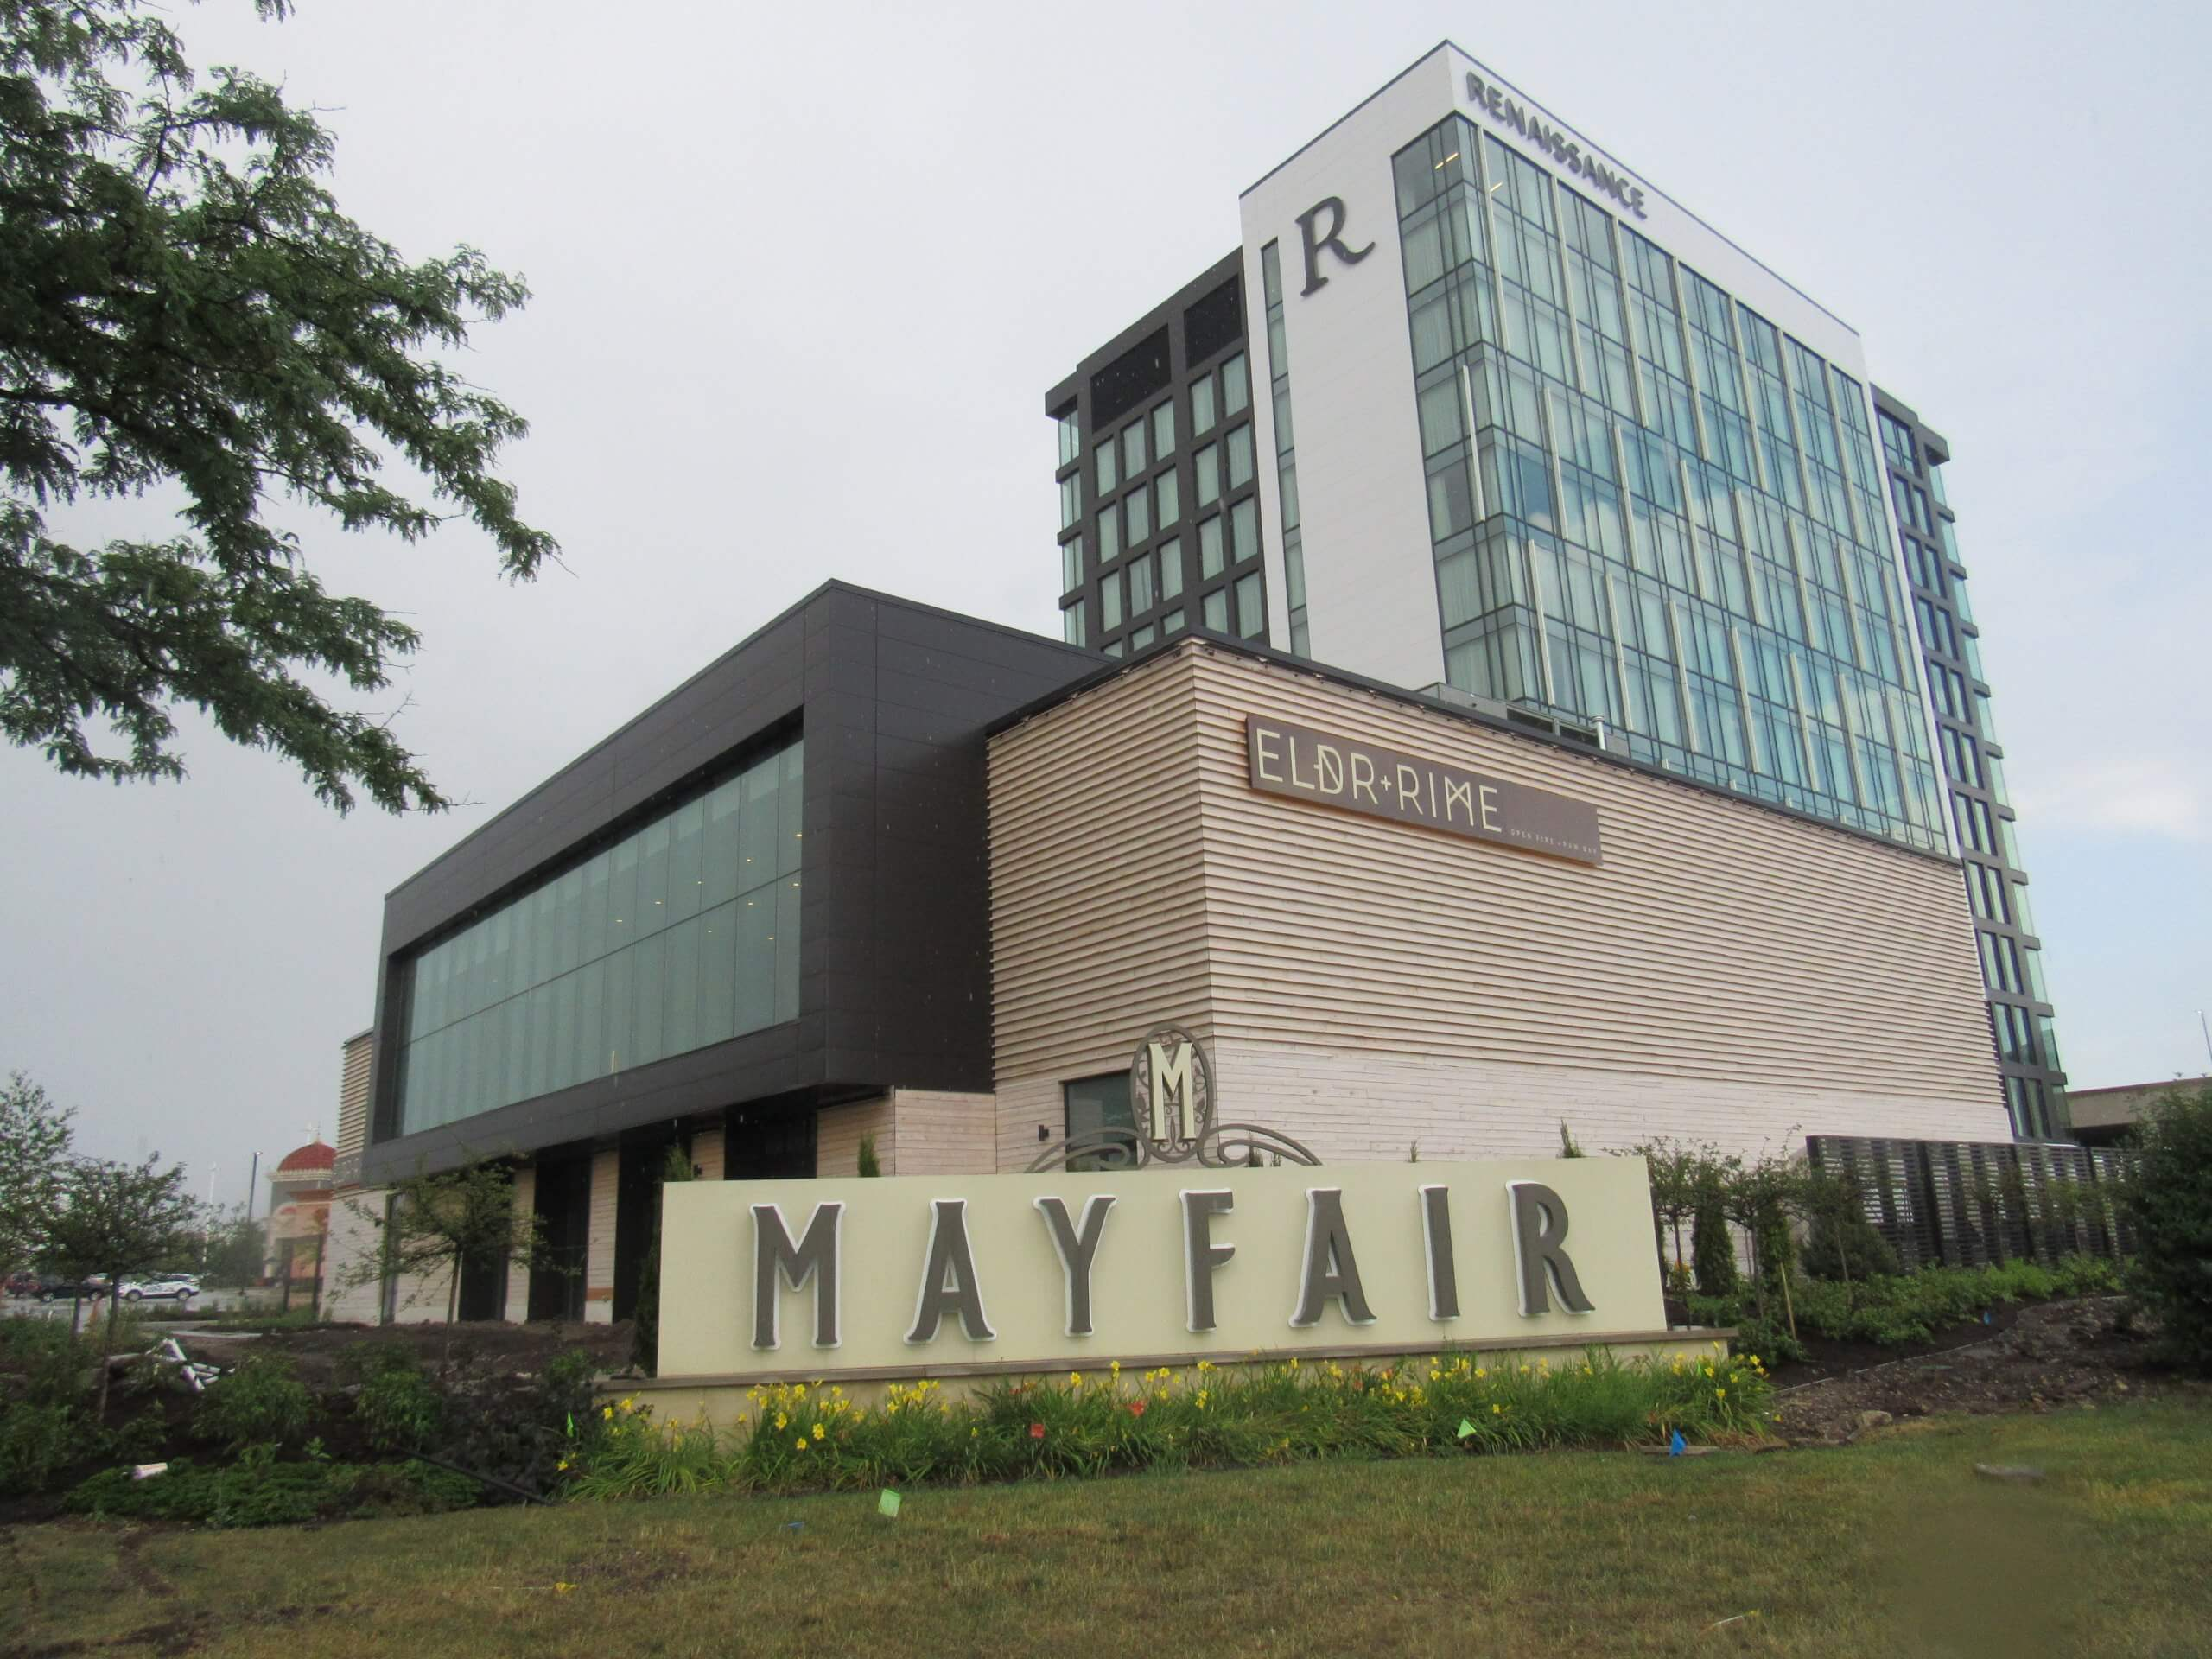 Mayfair Mall, the site of many recent protests related to the Wauwatosa Officer Joseph Mensah. (Photo by Isiah Holmes)